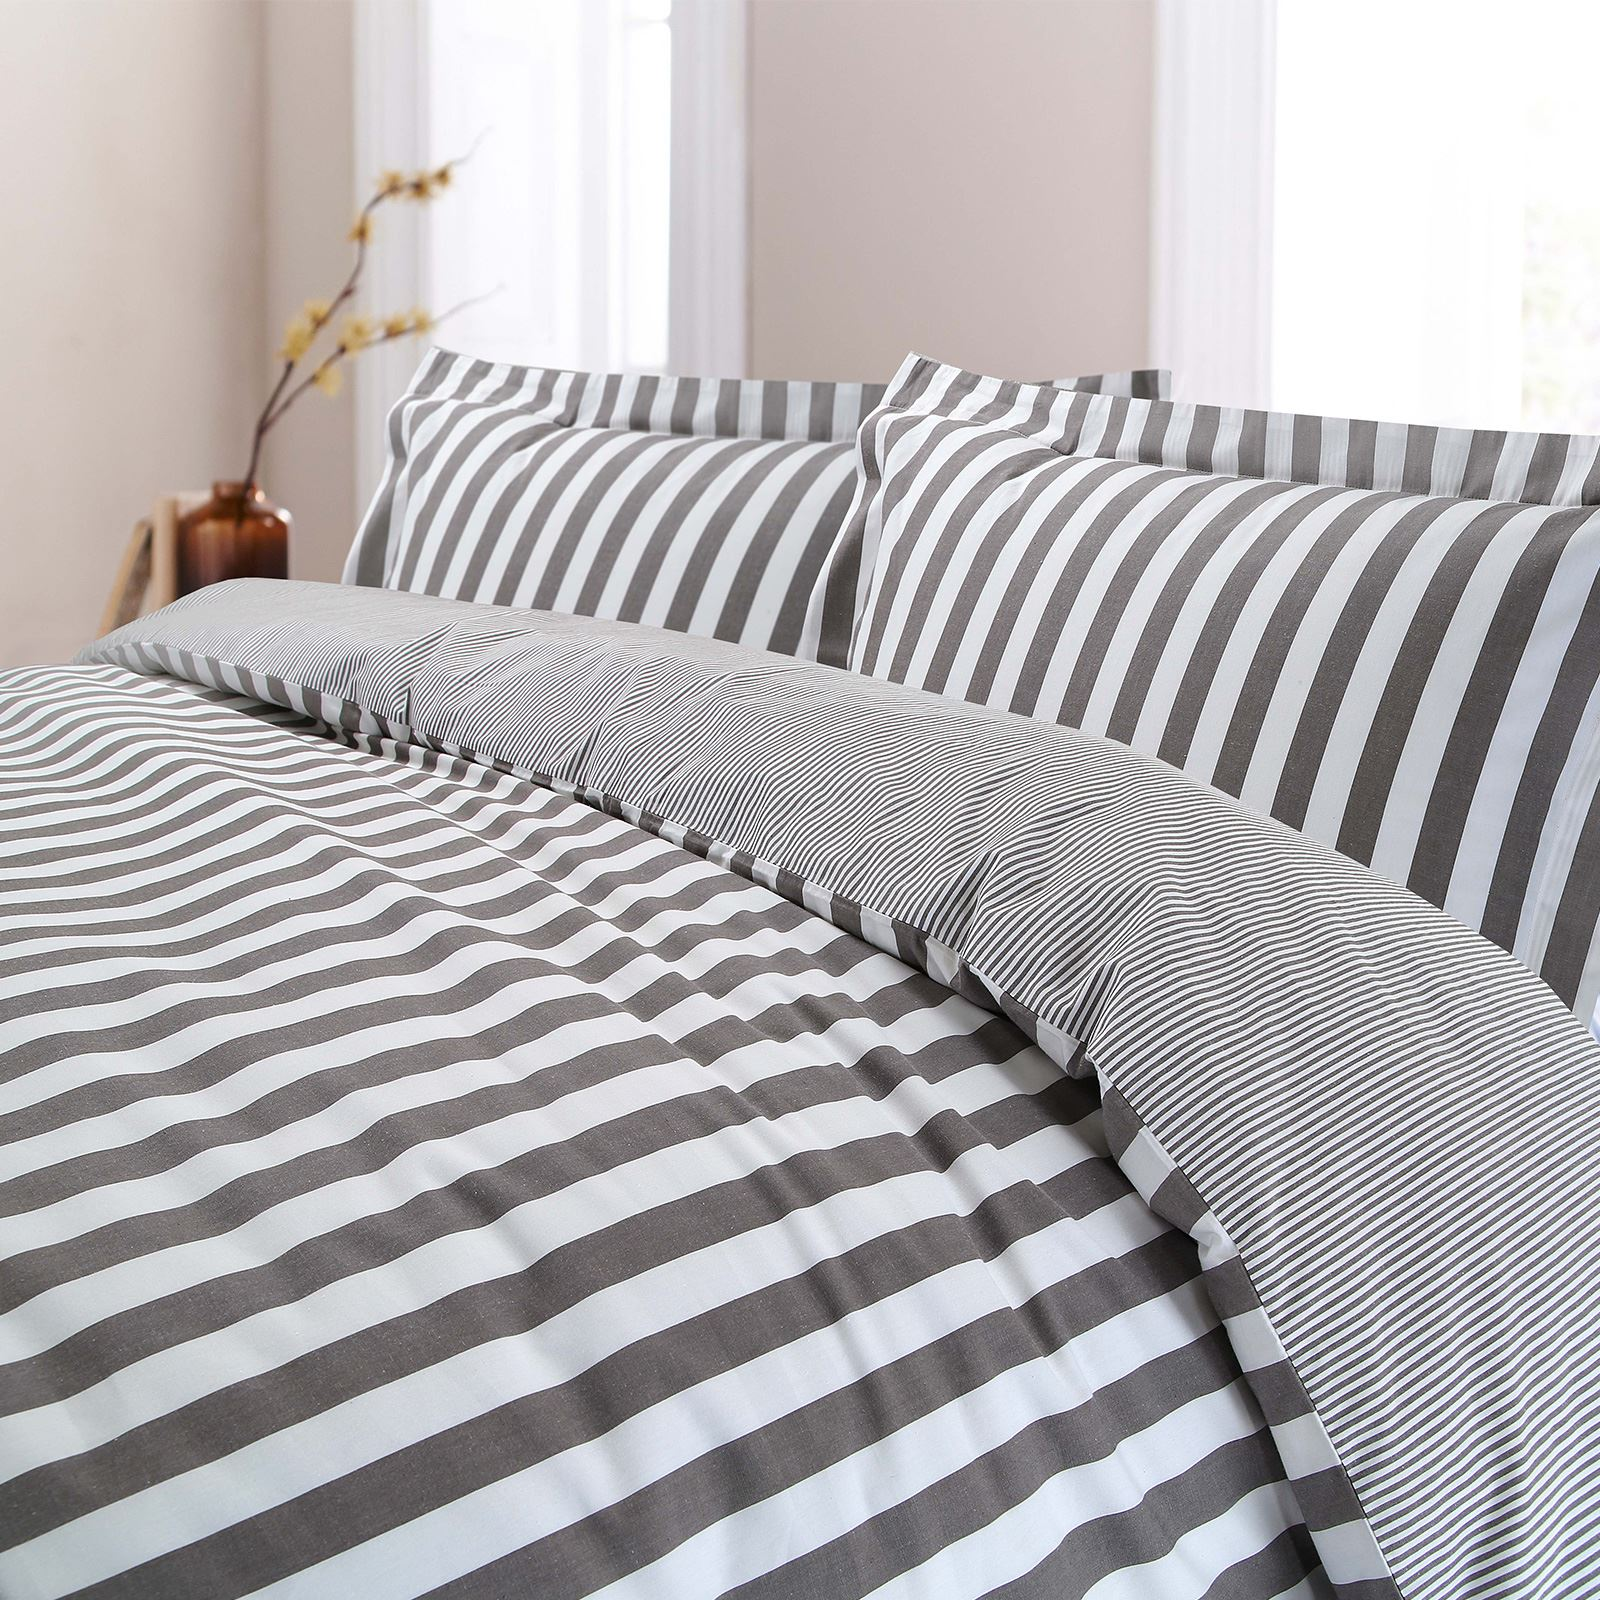 100/% Combed Cotton Duvet Cover Set Bedding Cosy Winter Stripe Yarn Dyed T200